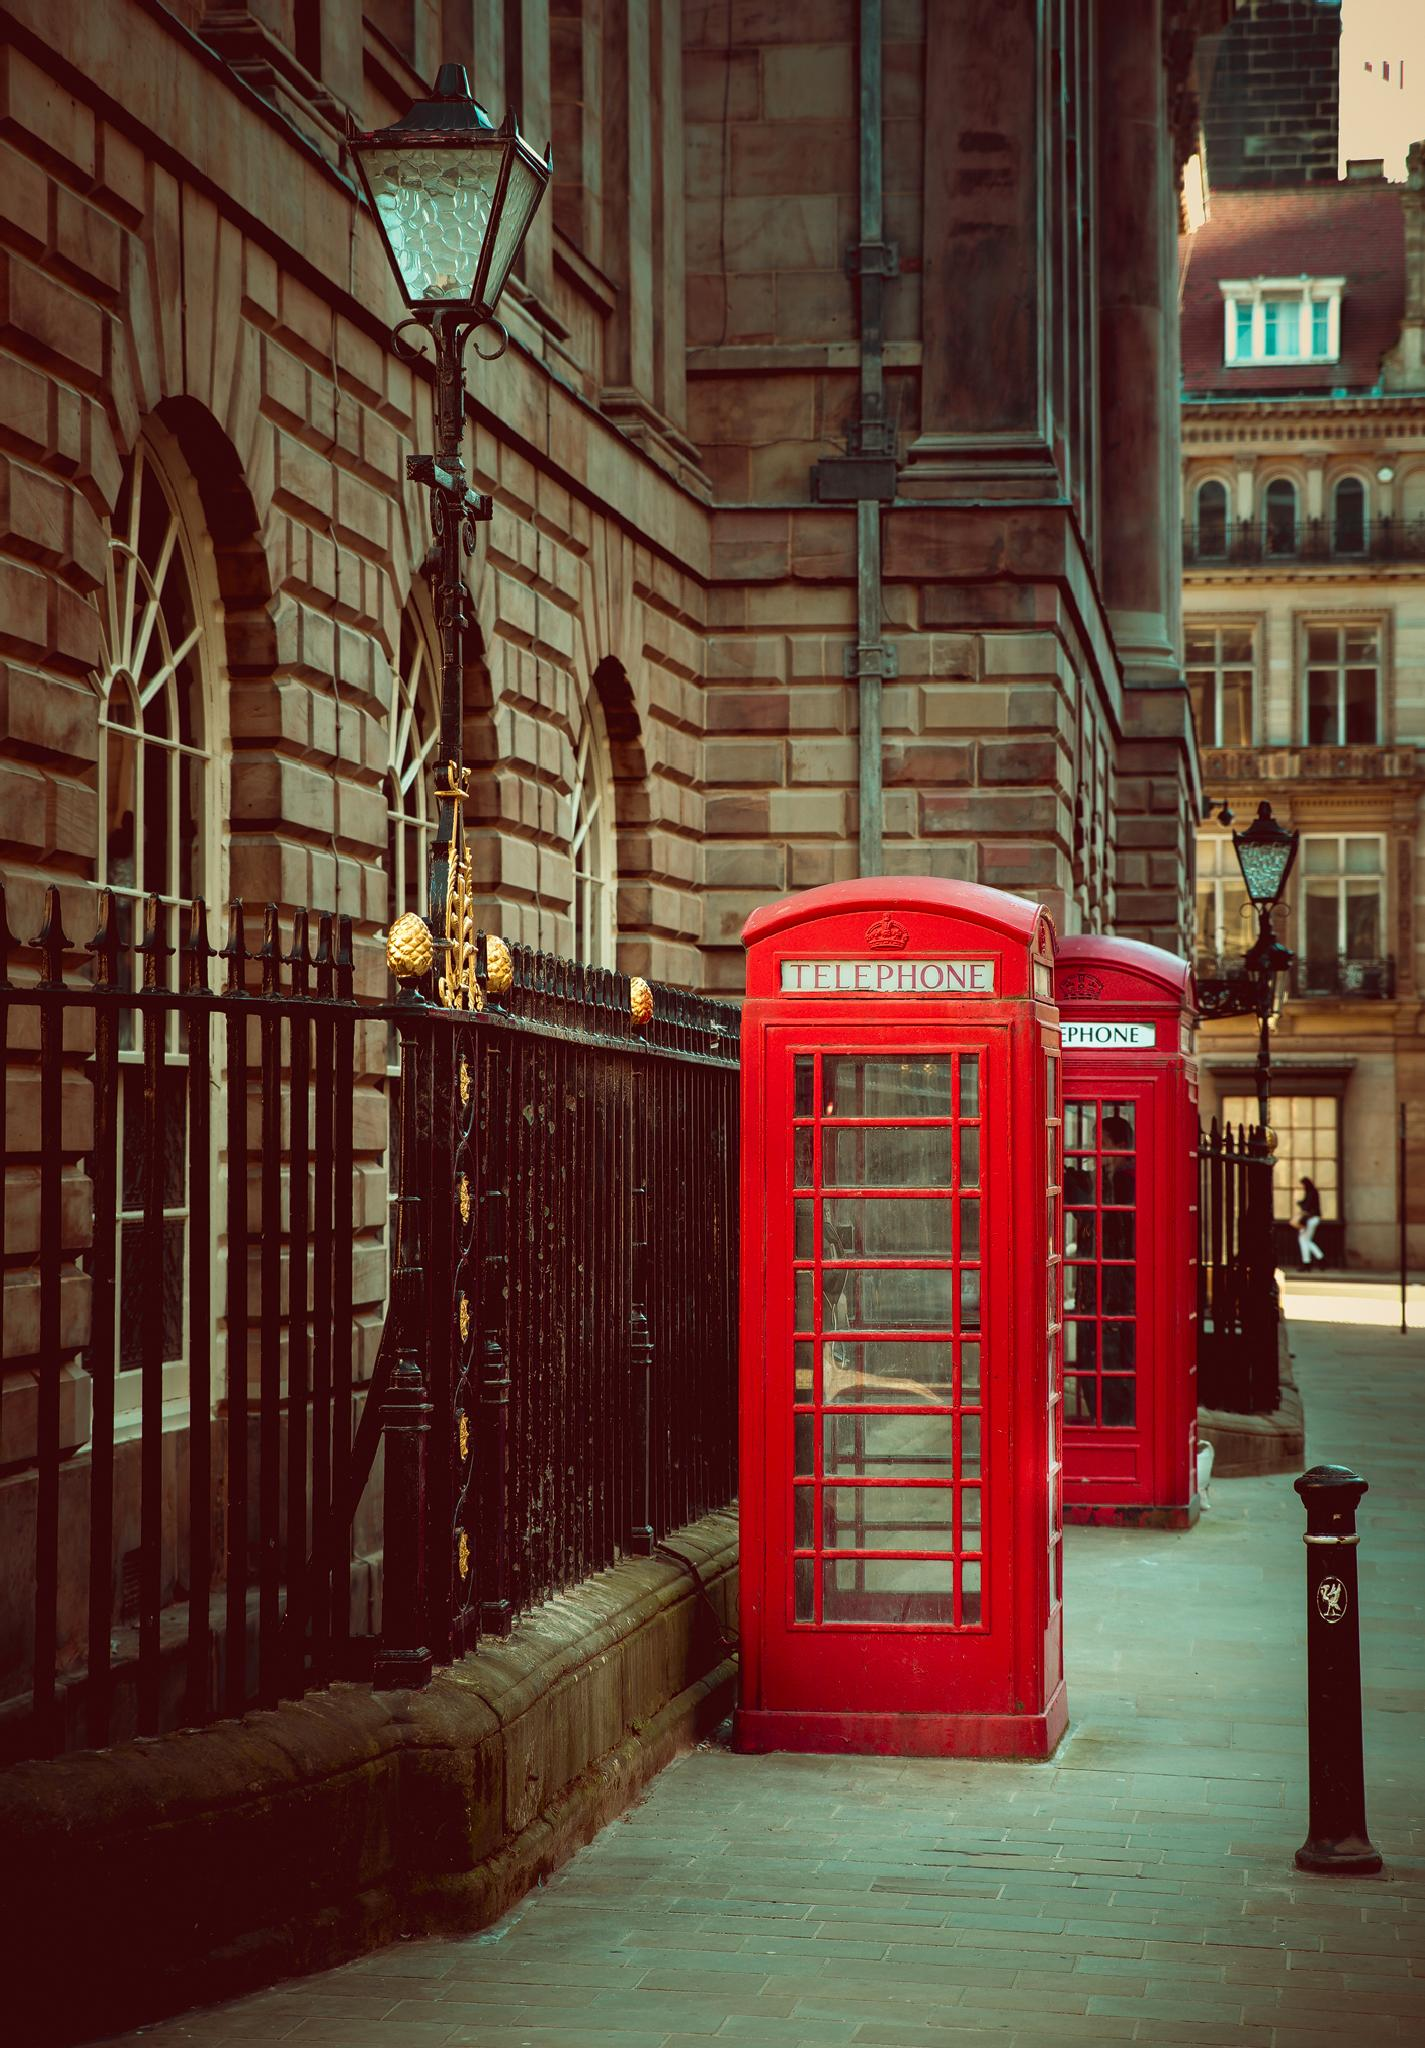 Phone booth in England by ThomasBechtleFotografie